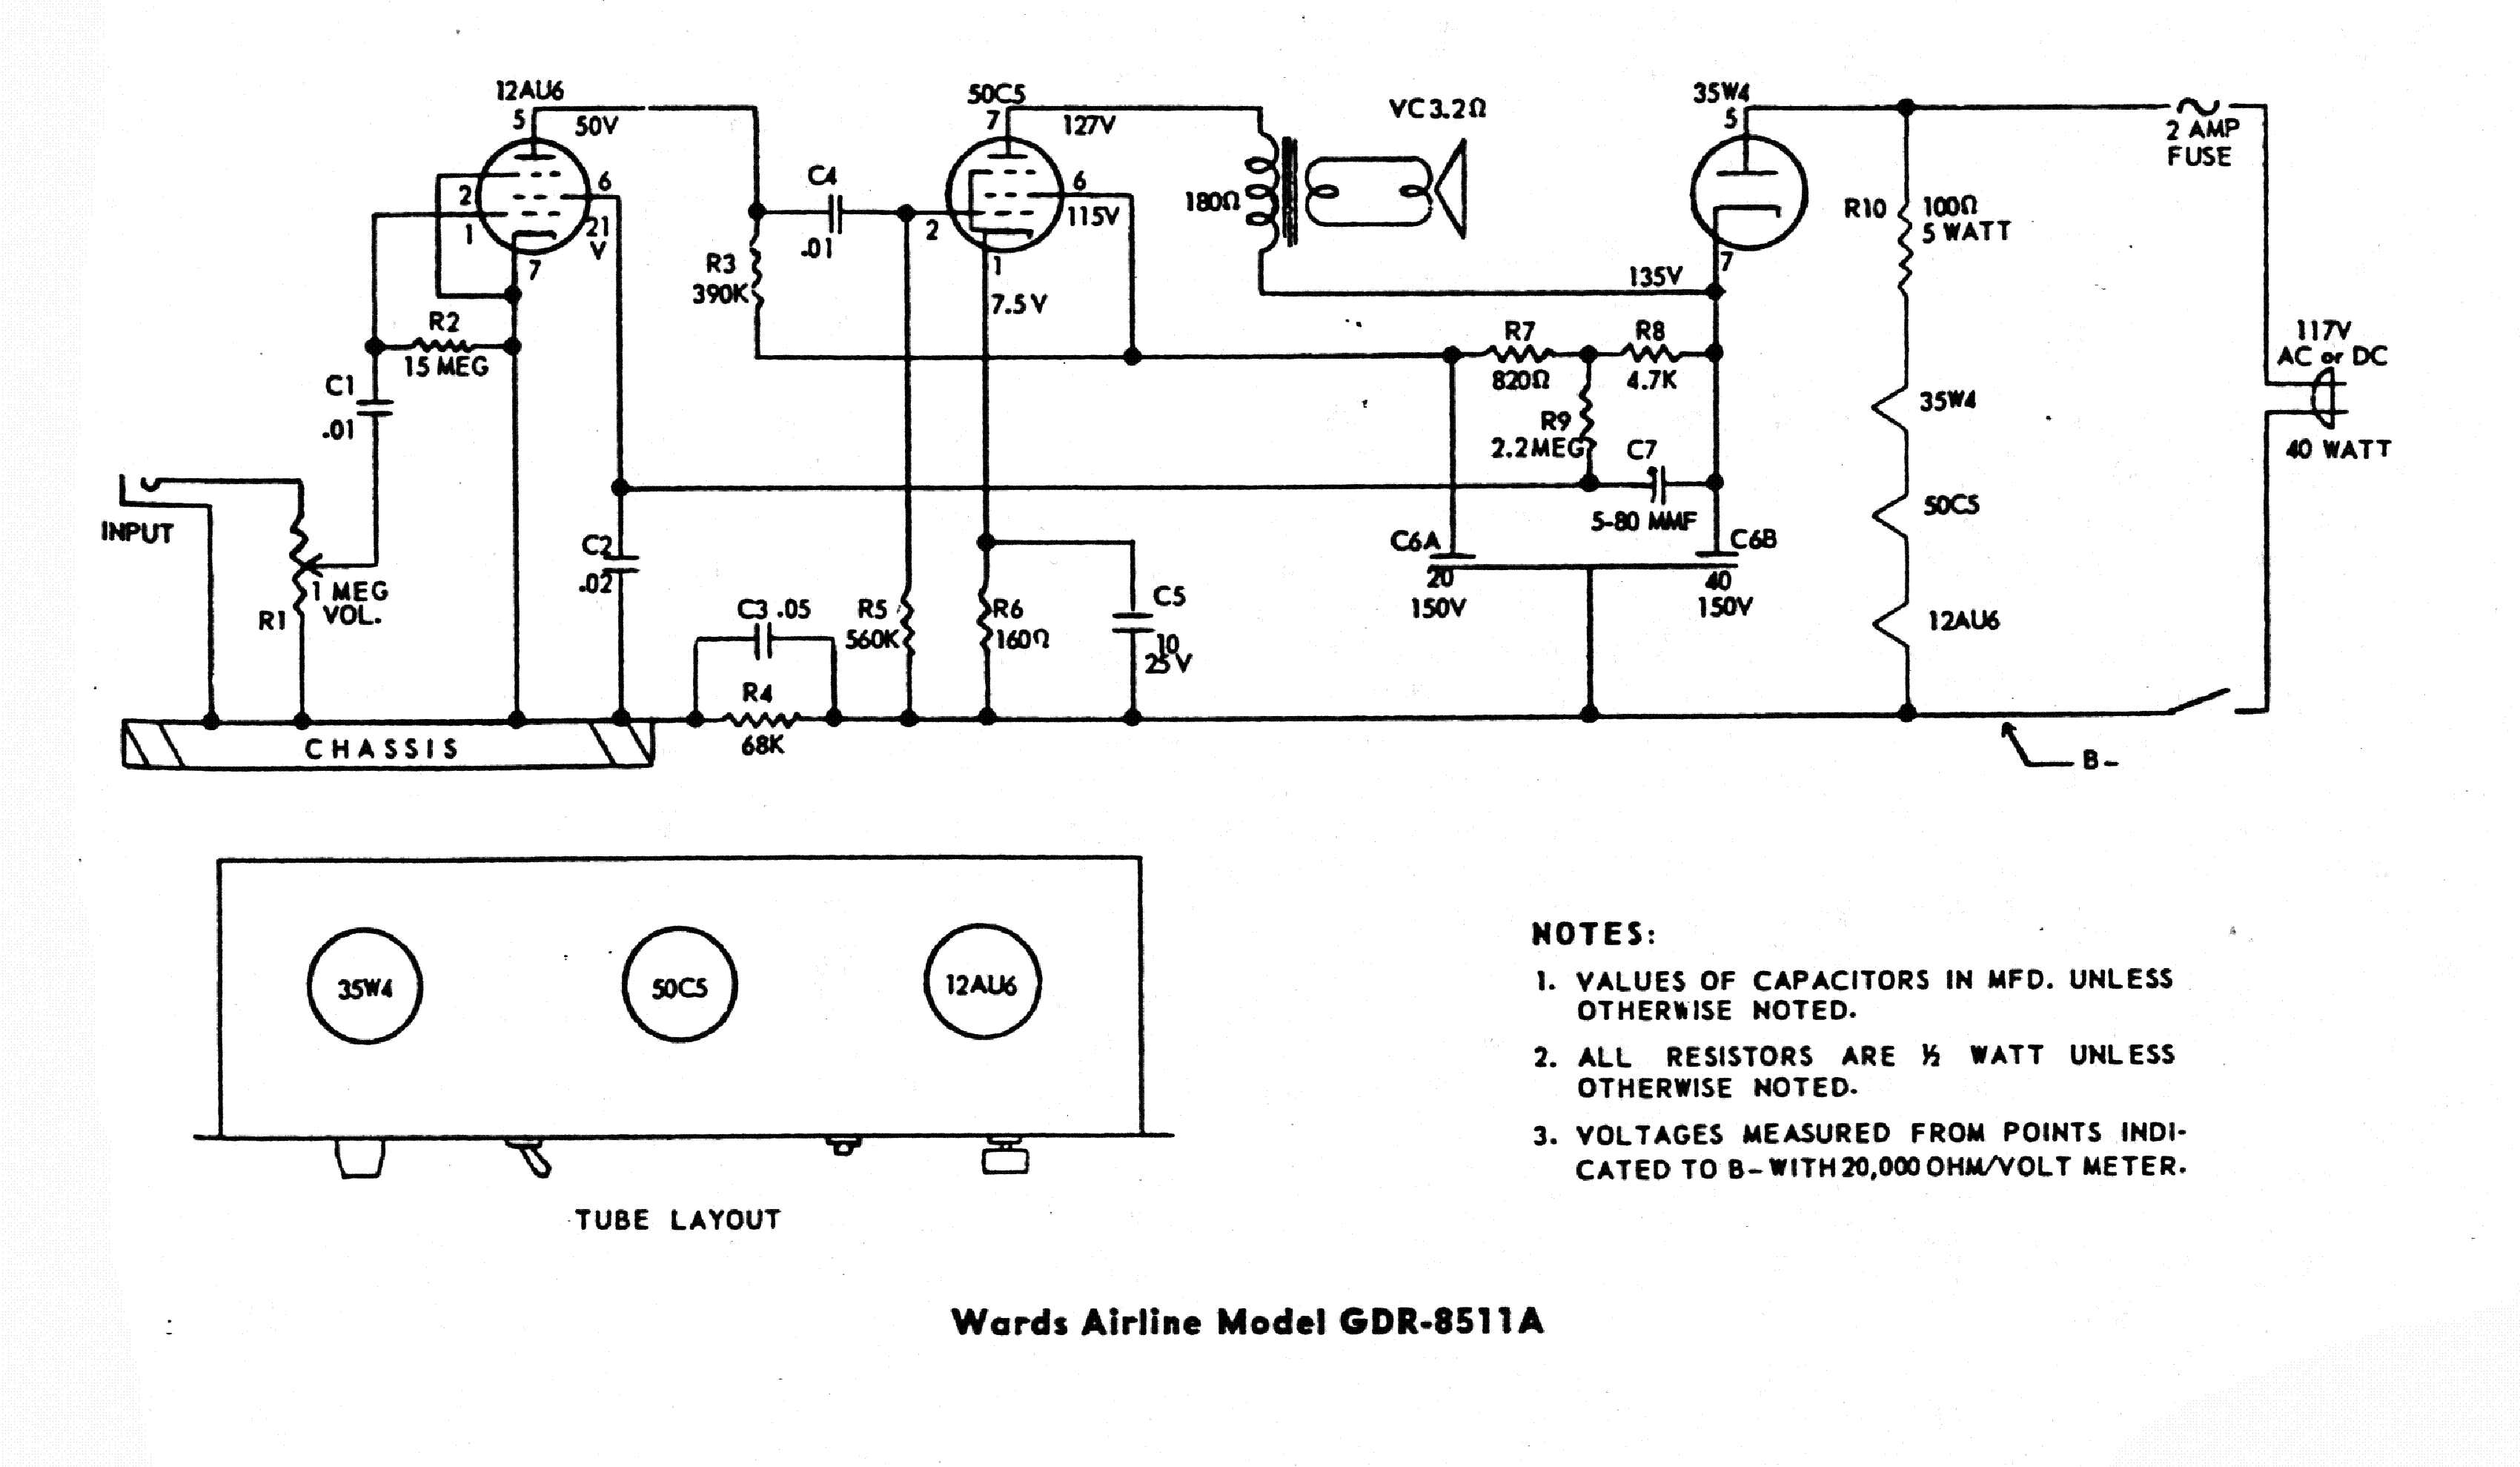 Guitar Amp 12au6 Possible Gain Increase Diyaudio In Addition Push Pull Tube Schematic On 6sn7 Amplifier Click The Image To Open Full Size